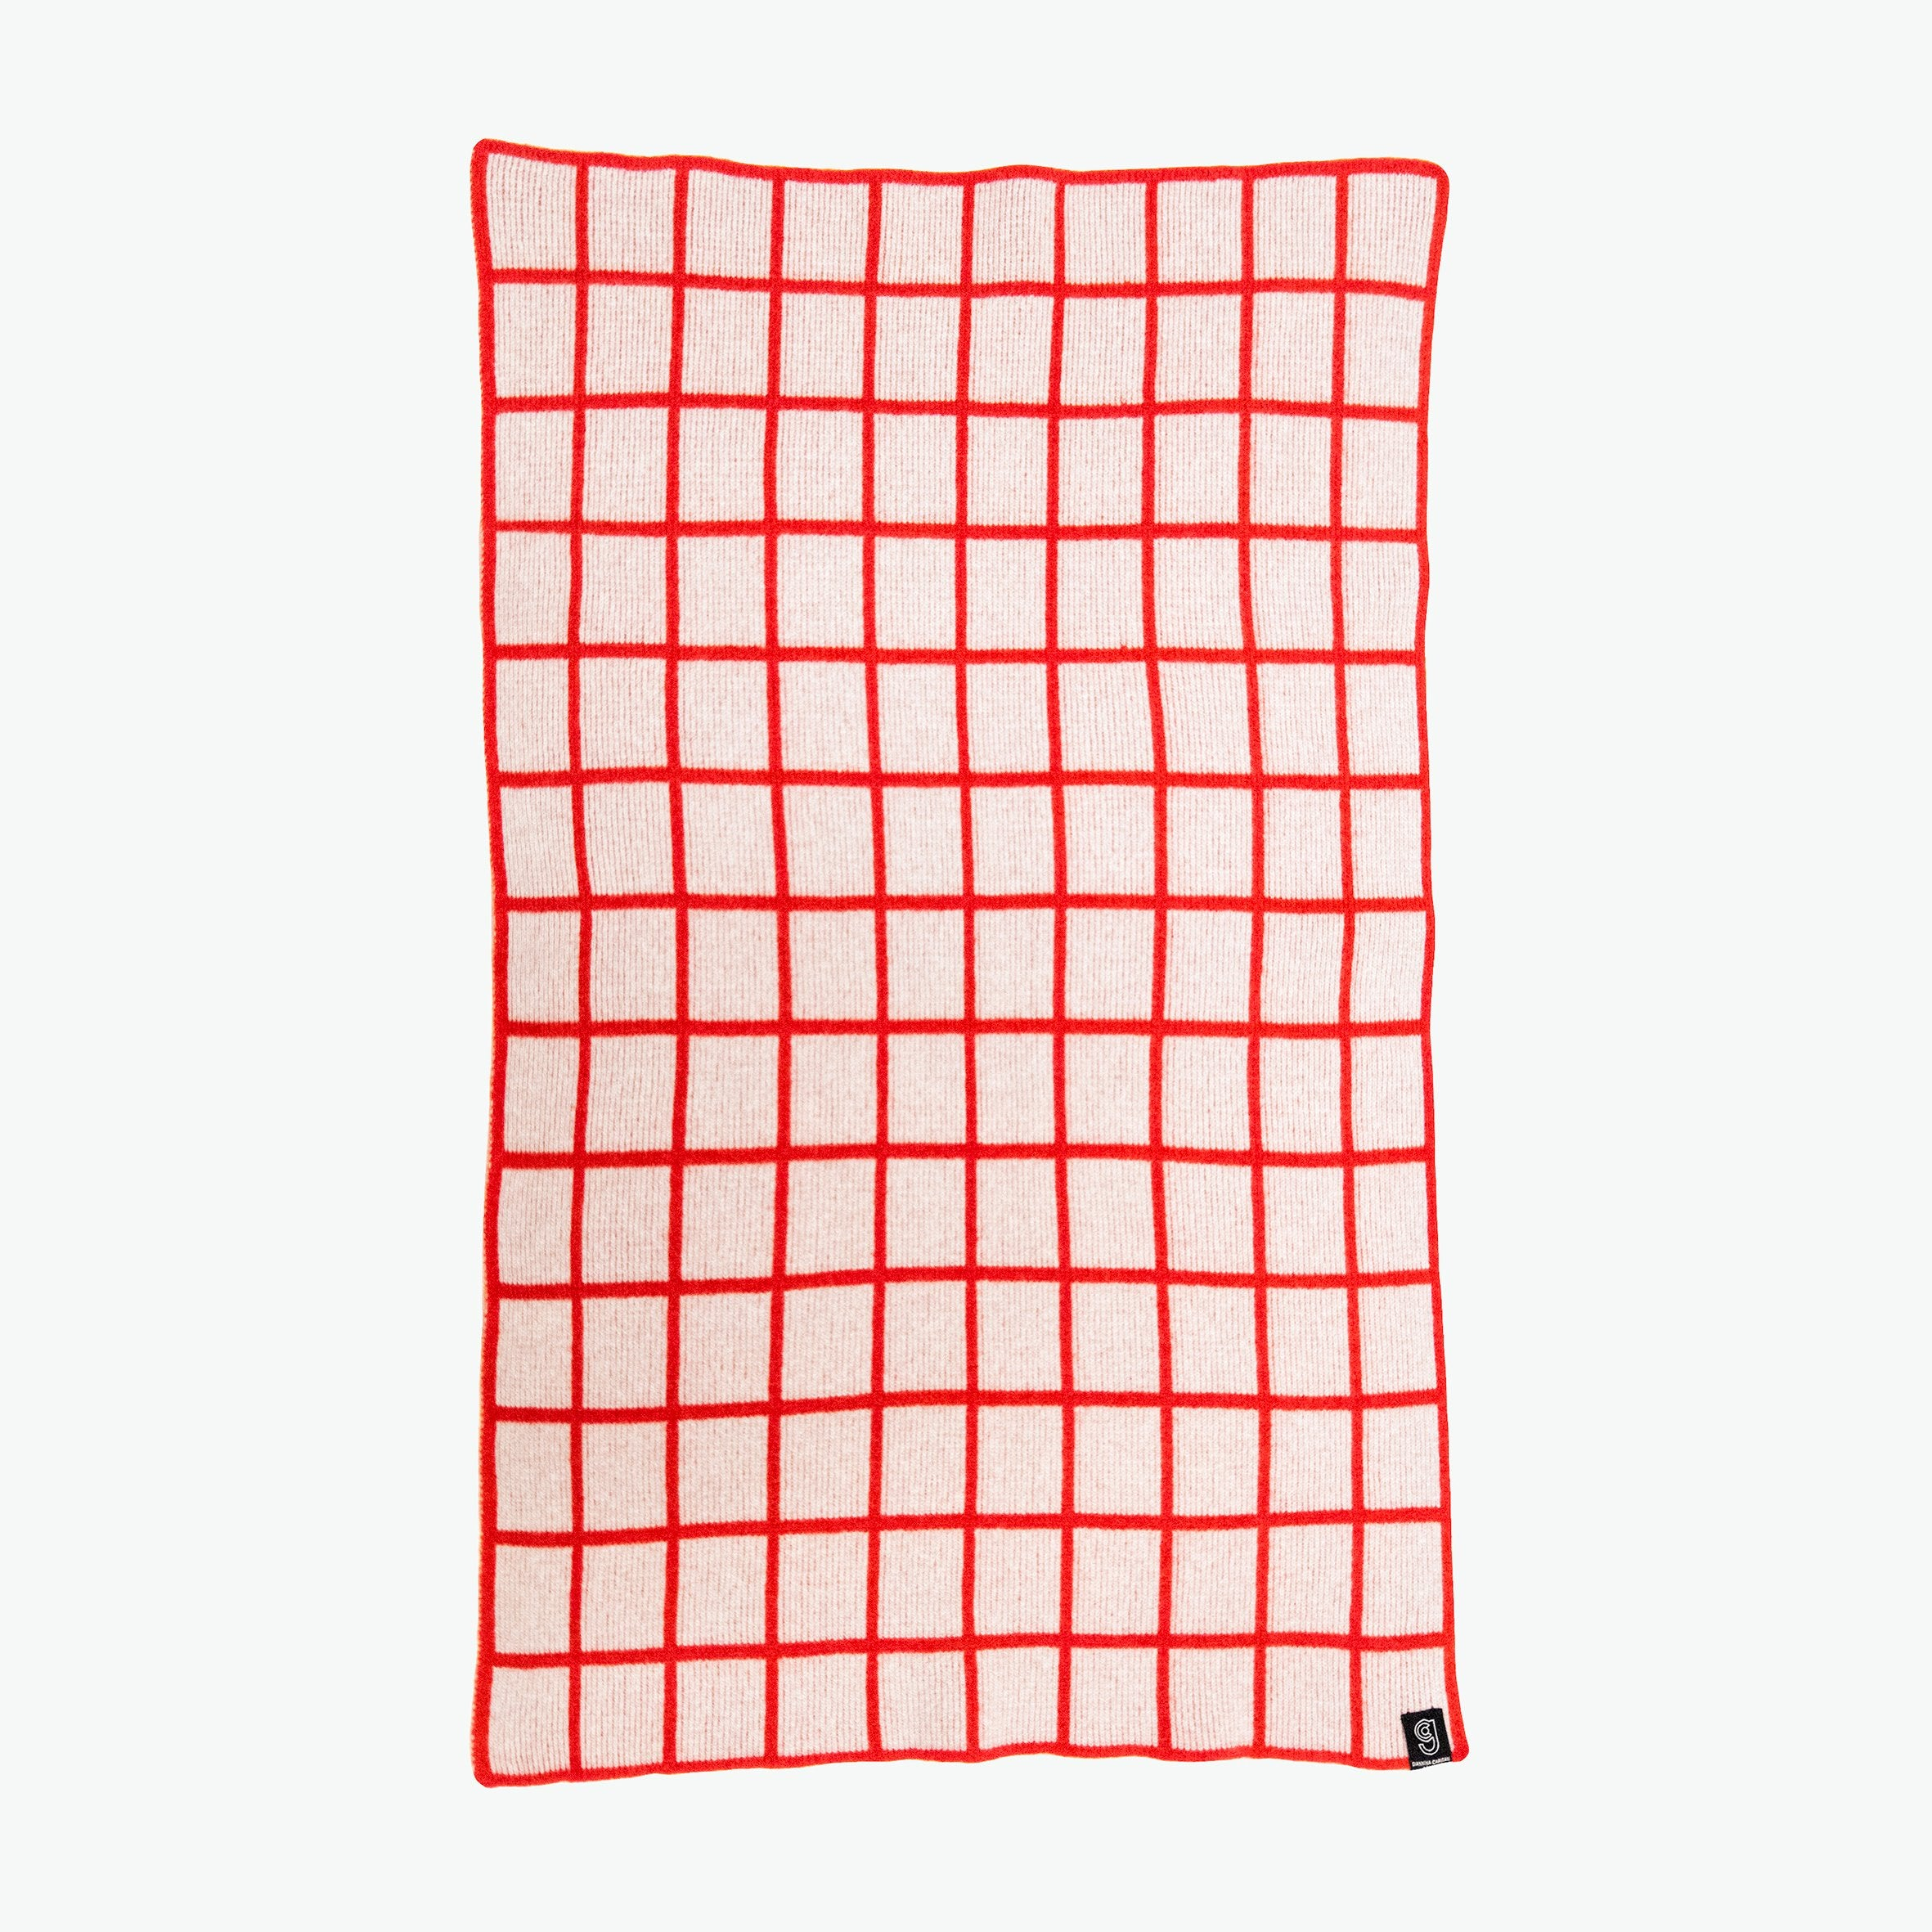 GRID BABY BLANKET IN GREY AND RED